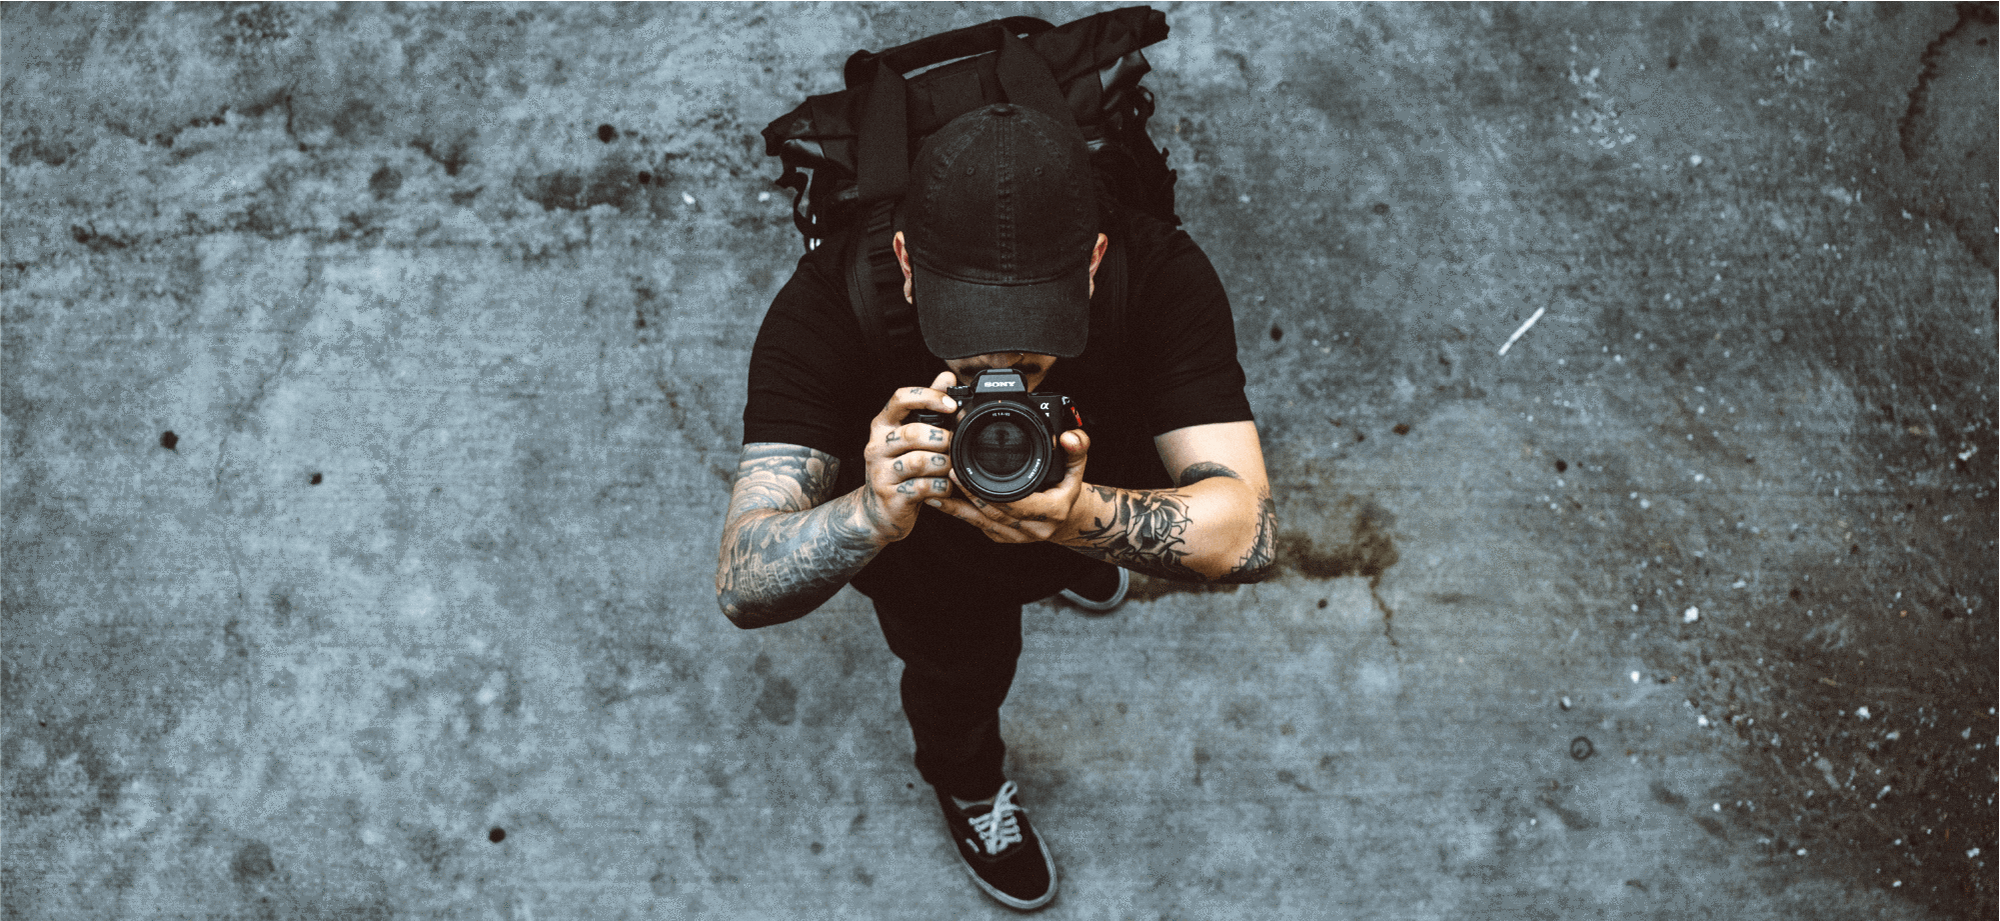 How To Take Great Photos: Best And Worst Photography Tips